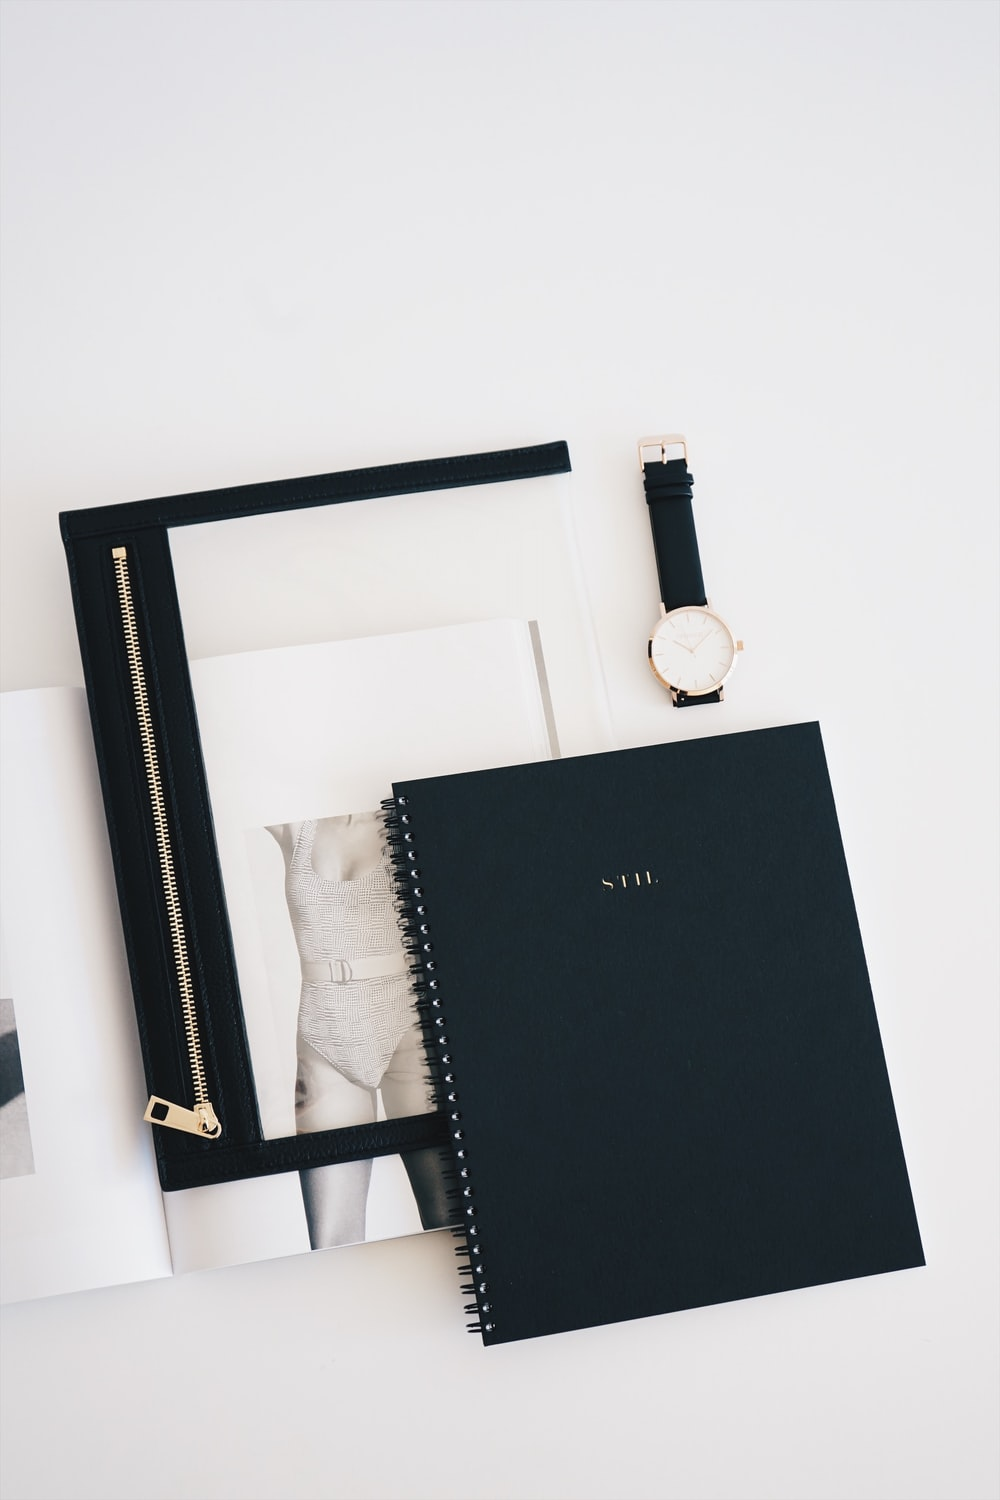 flat lay photo of watch, notebook, and watch